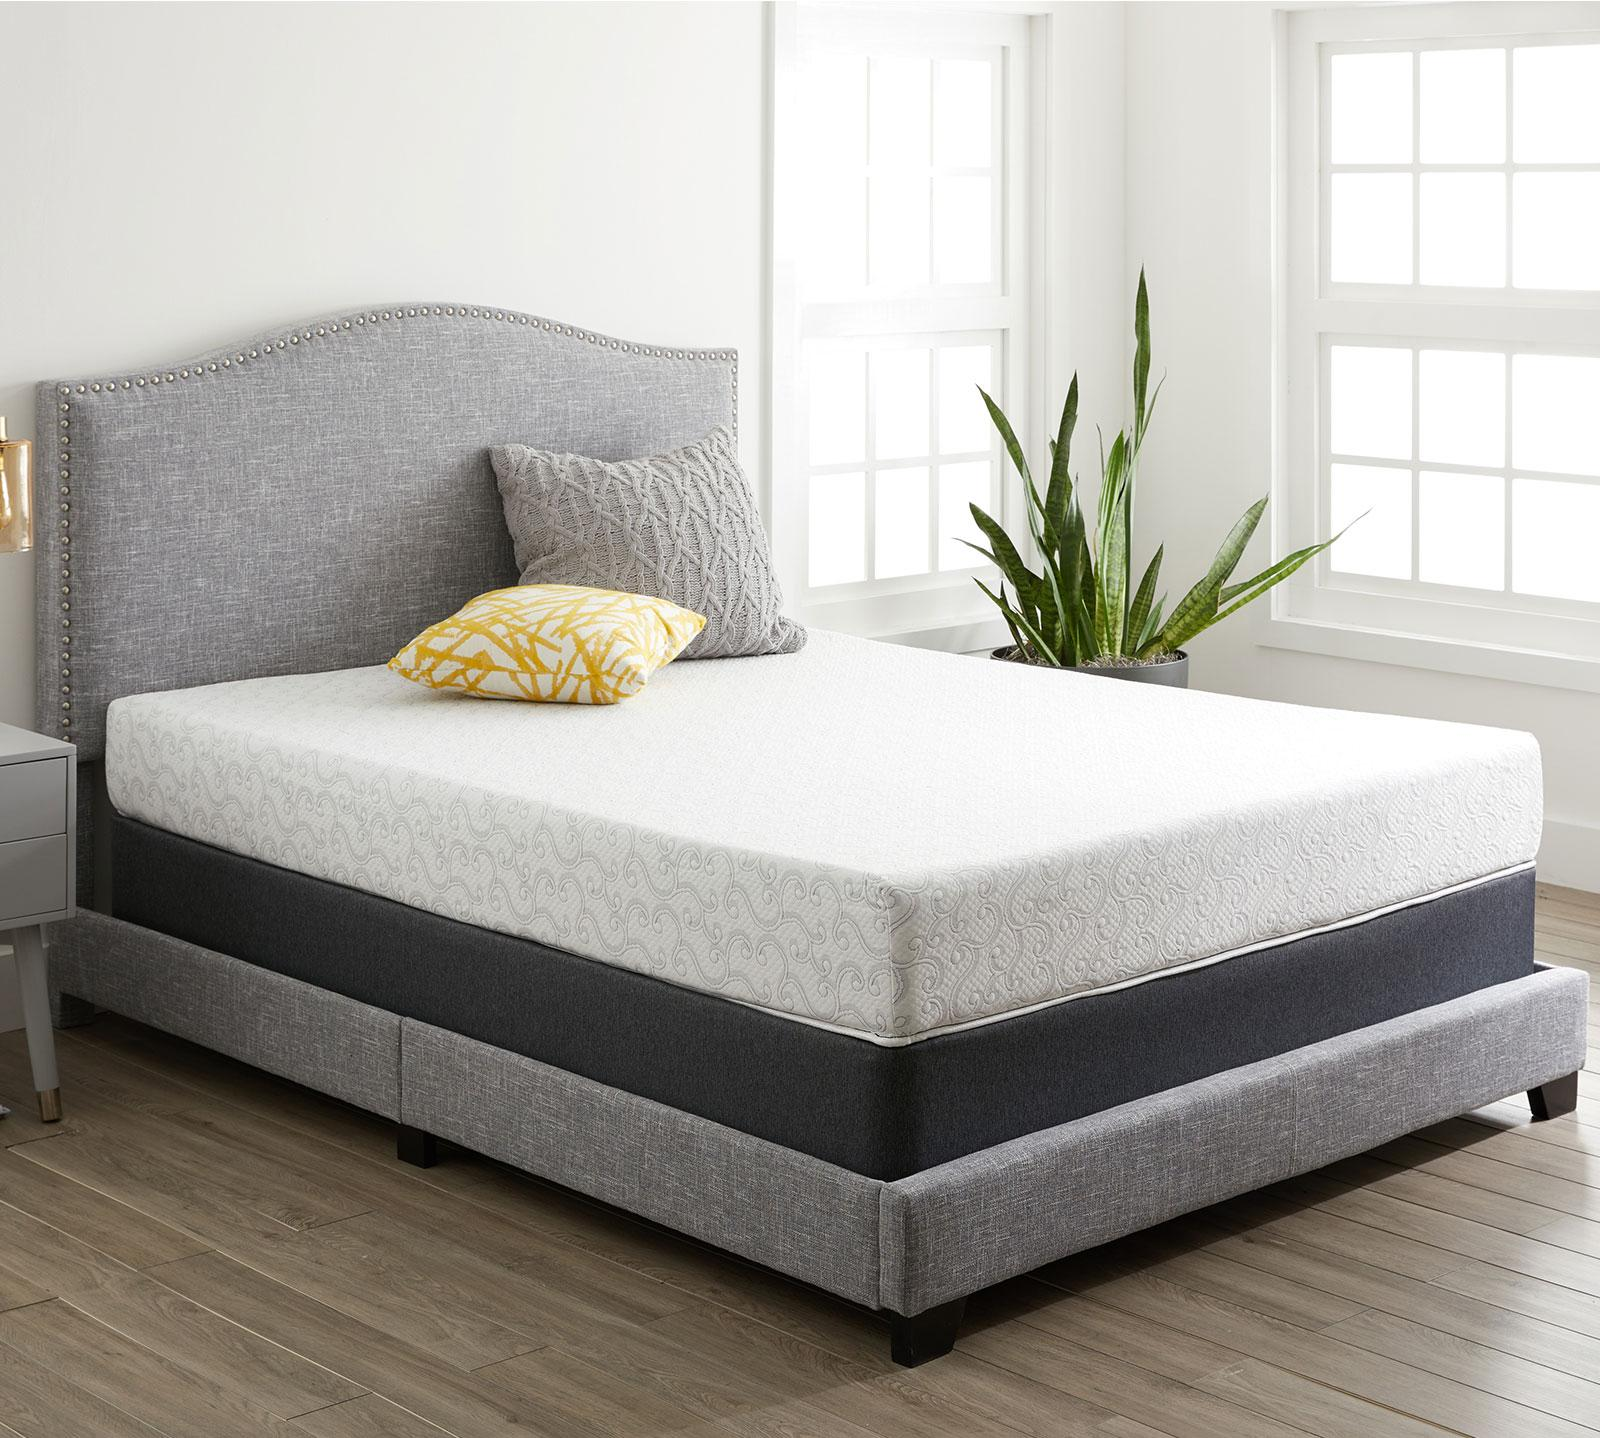 alesbury 8 plush memory foam mattress